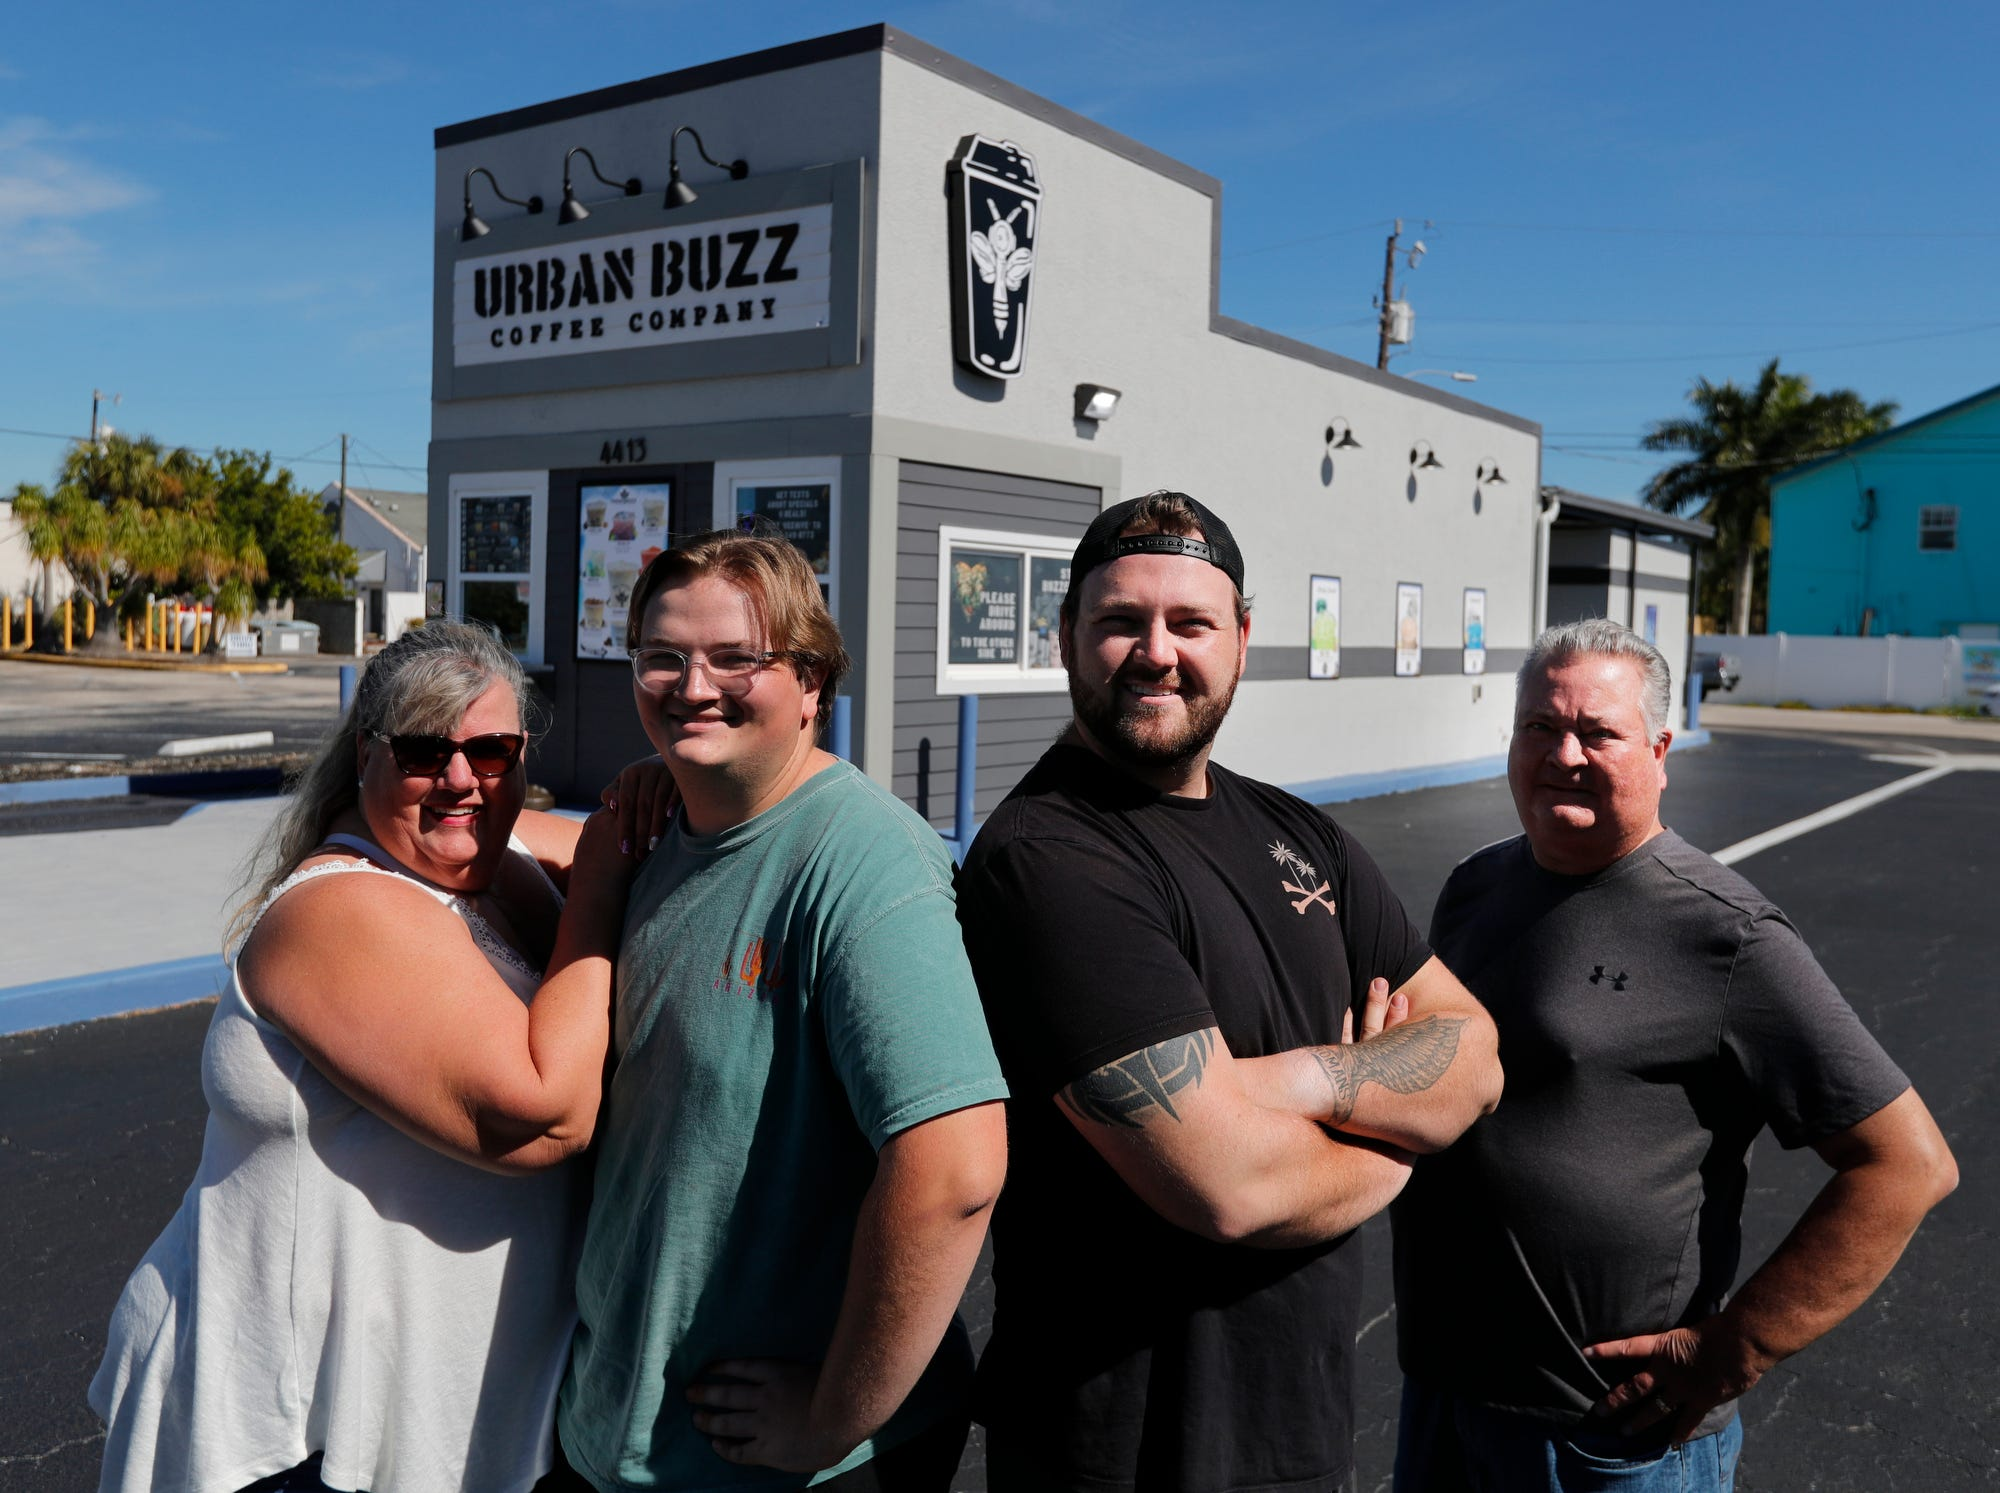 Urban Buzz causing quite a stir in Cape Coral with coffees, teas and shakes